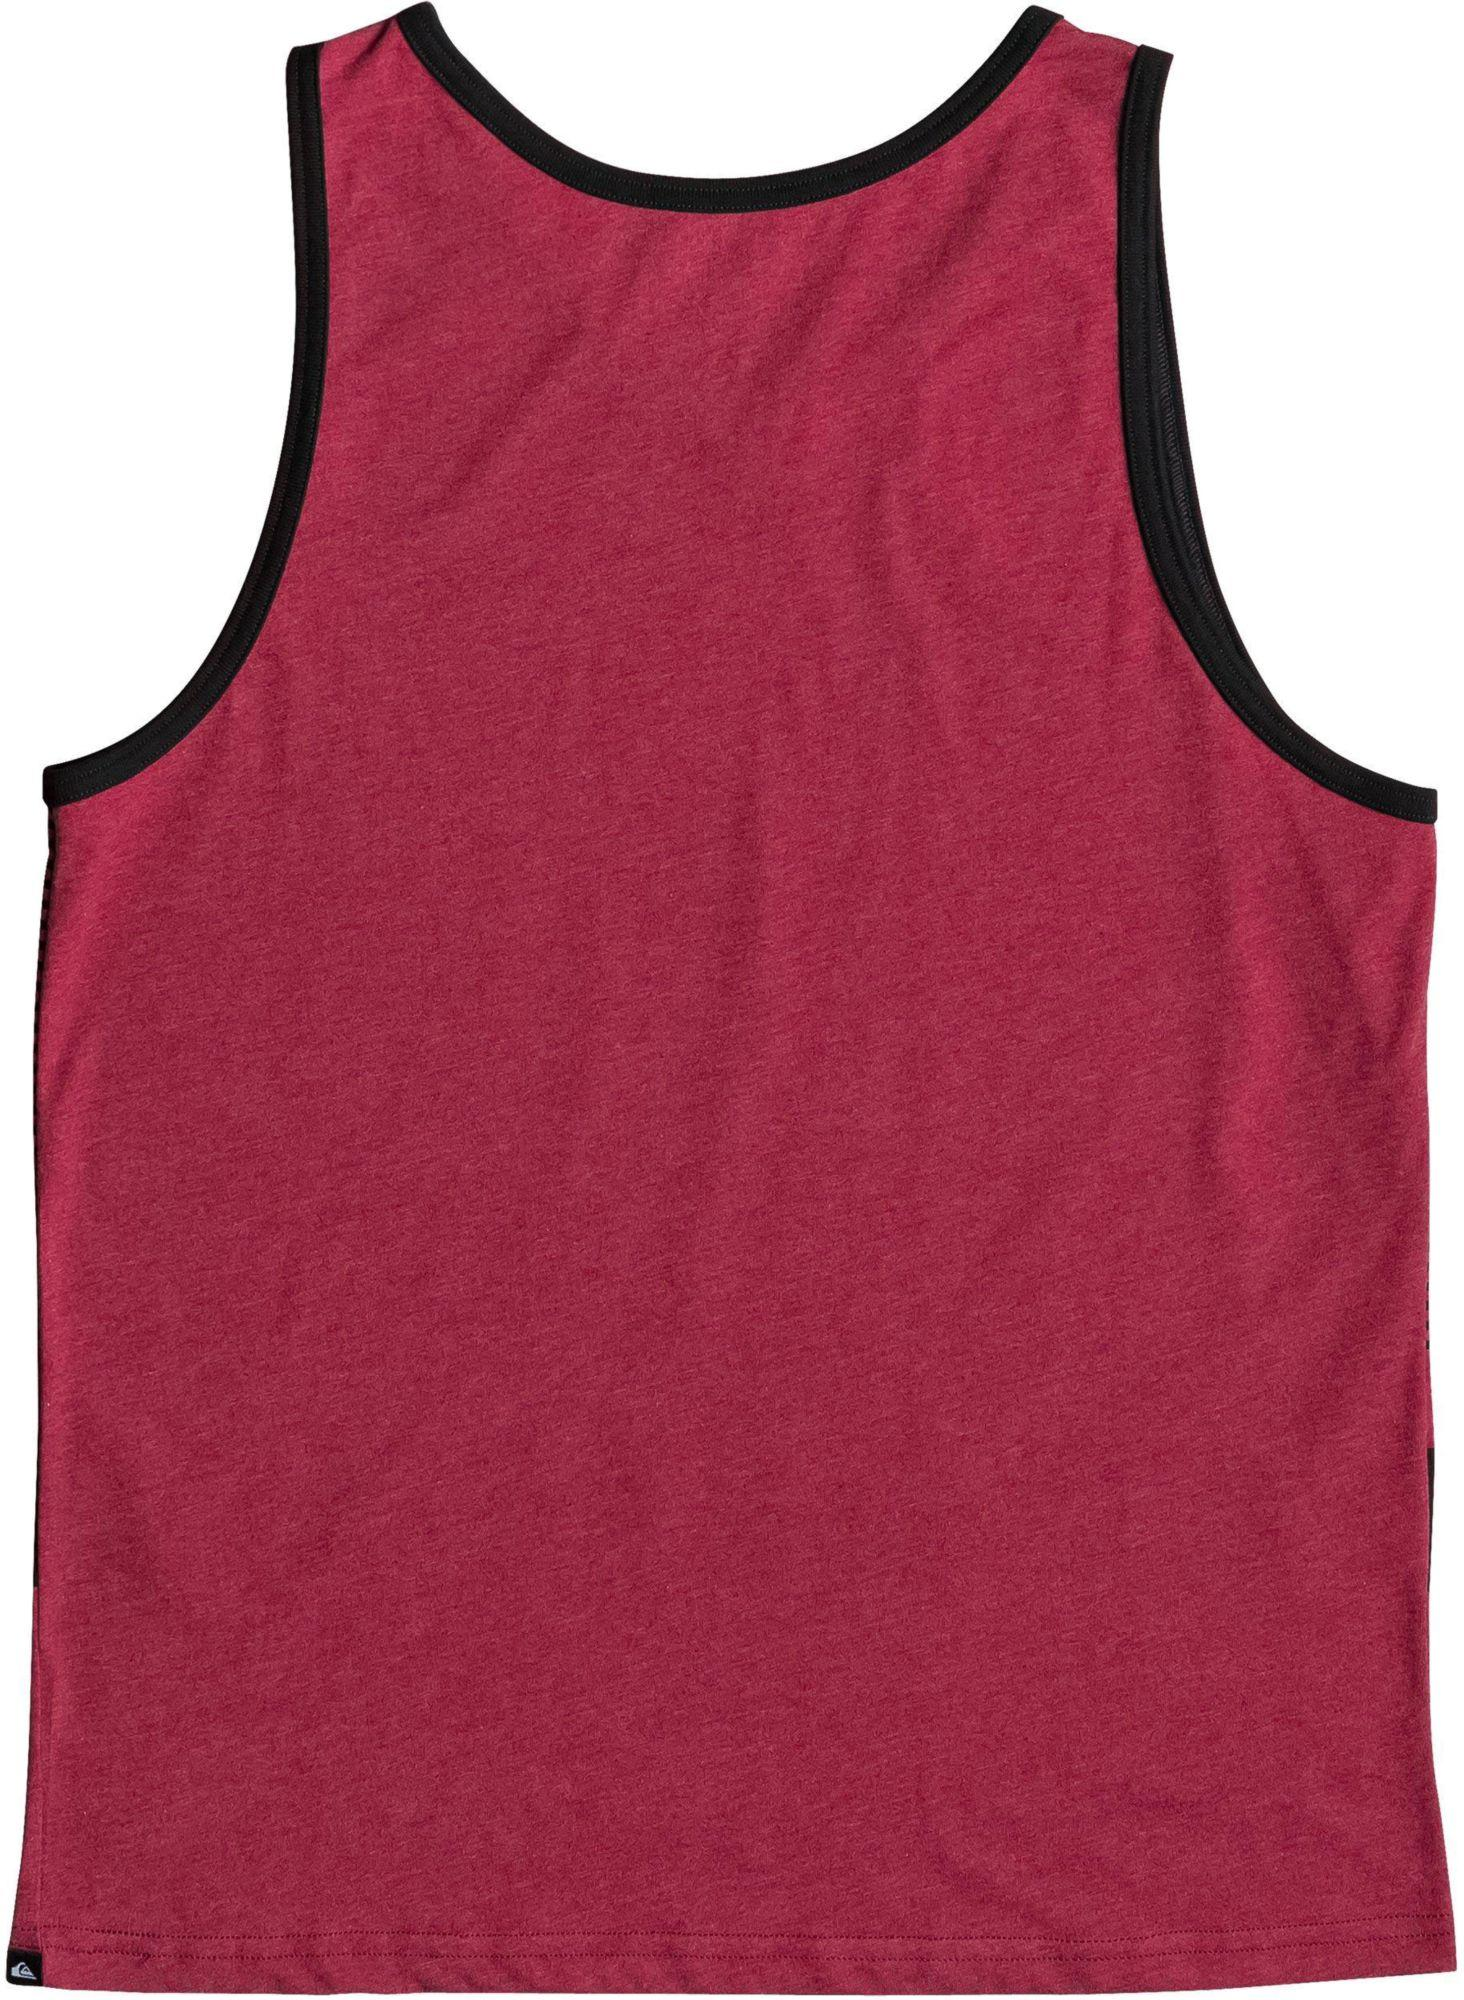 e64a7fabce44e0 Lyst - Quiksilver Highline Tijuana Tank Top in Red for Men